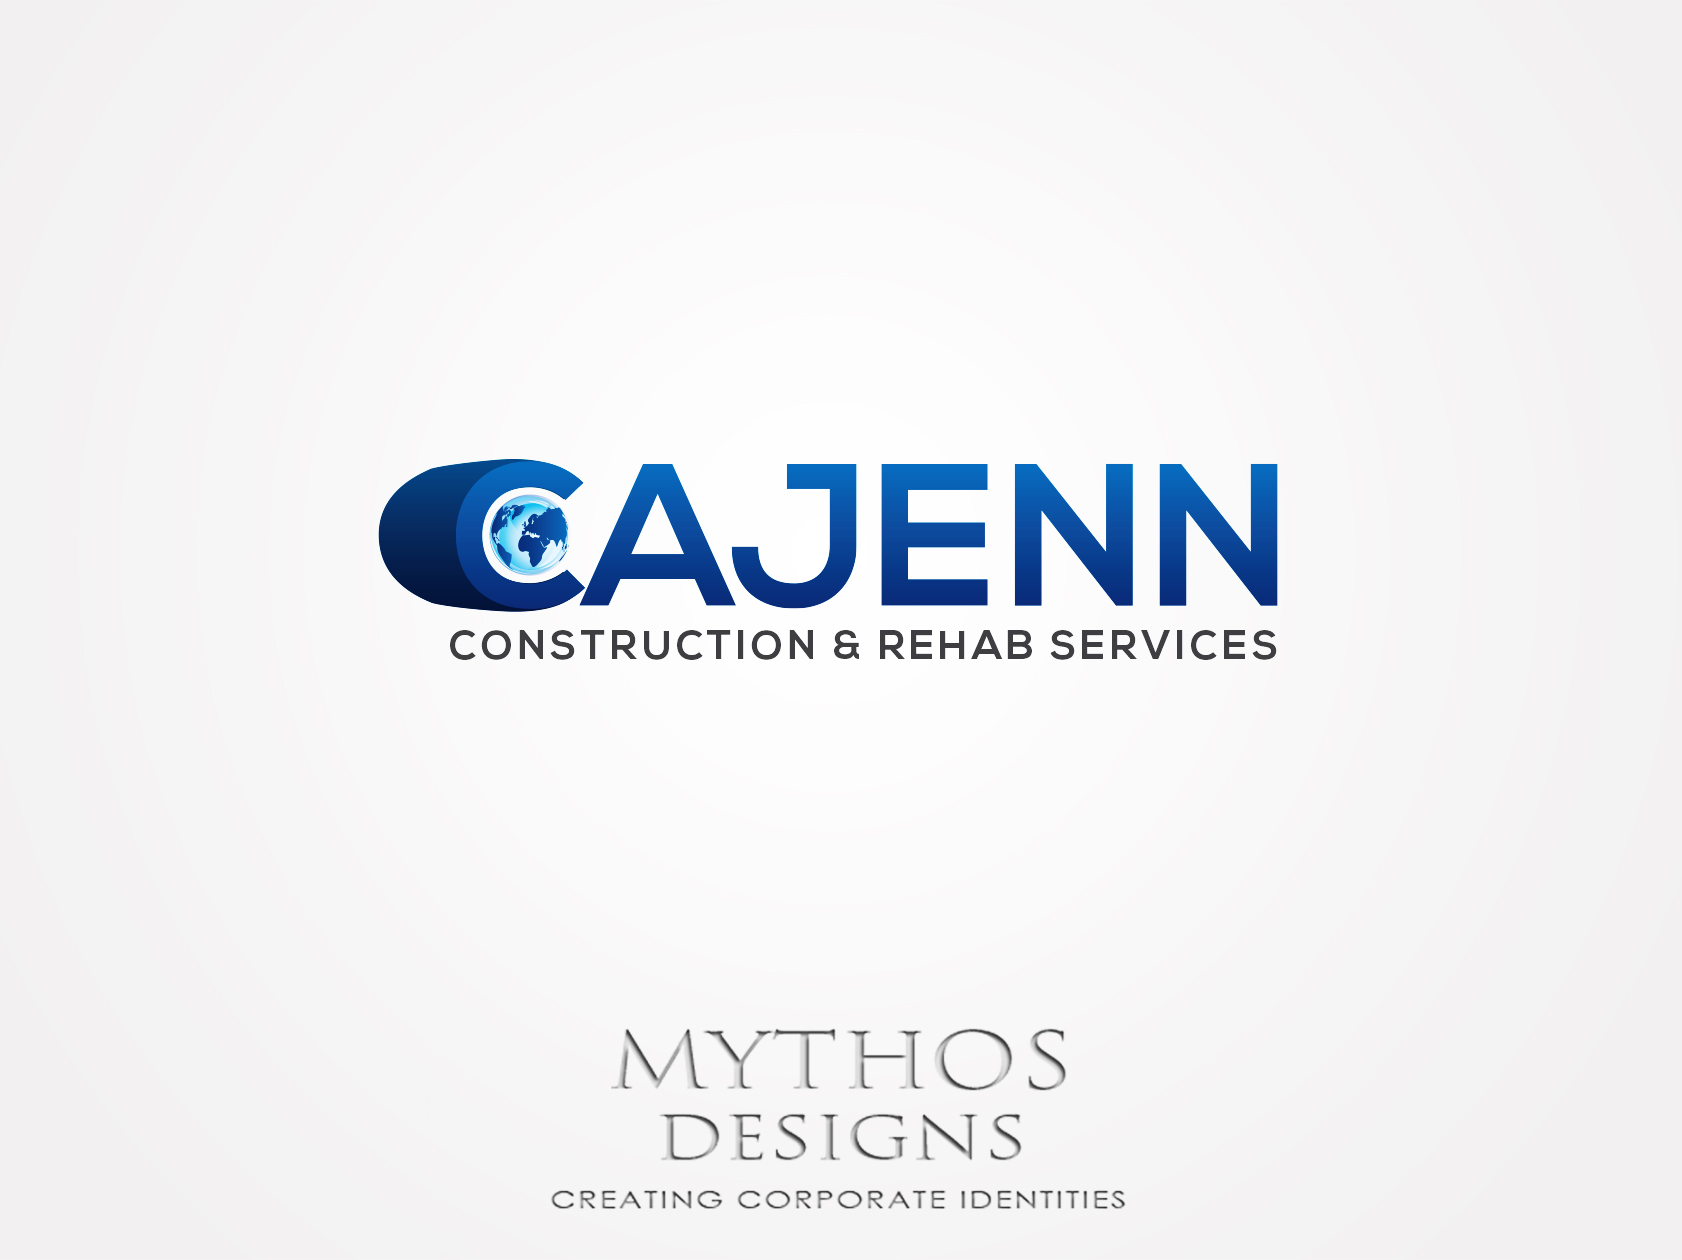 Logo Design by Mythos Designs - Entry No. 308 in the Logo Design Contest New Logo Design for CaJenn Construction & Rehab Services.